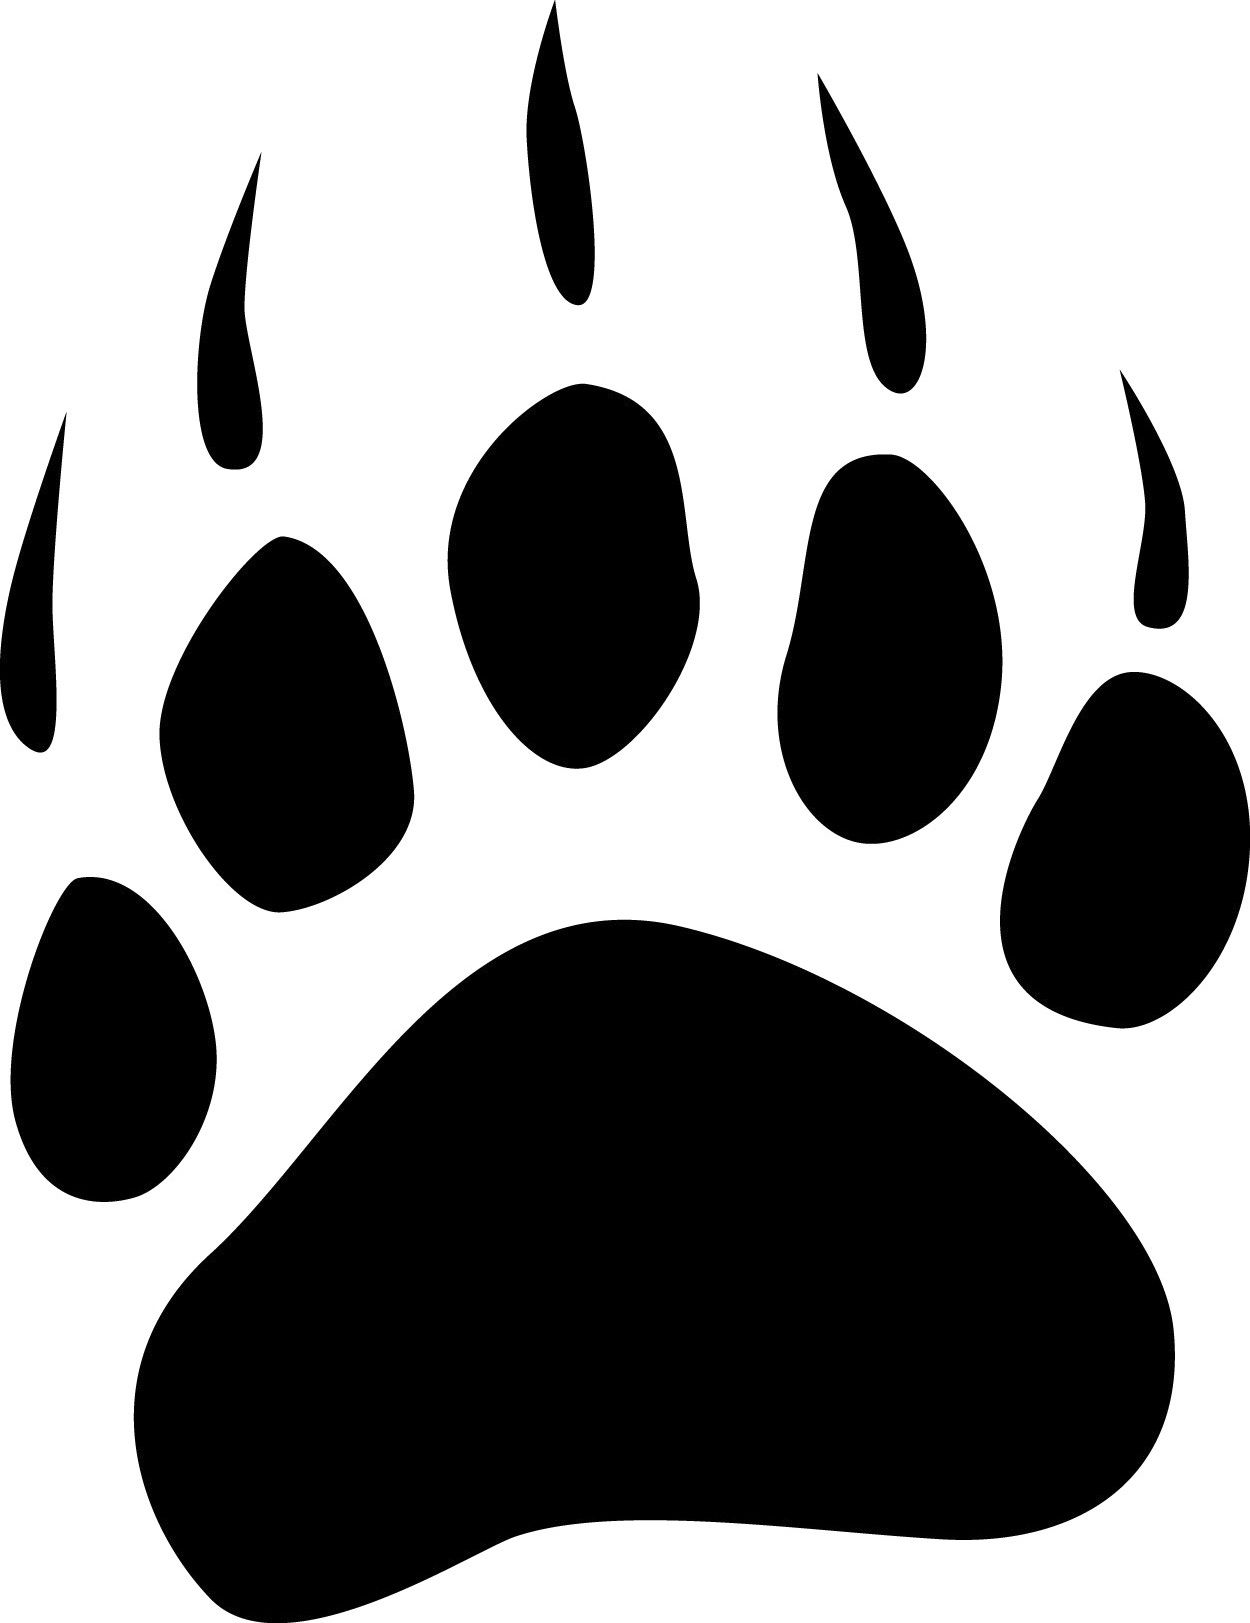 1191 views stencil 2 pinterest bears tattoo and bear paws rh pinterest com bear cub paw print clip art teddy bear paw print clip art